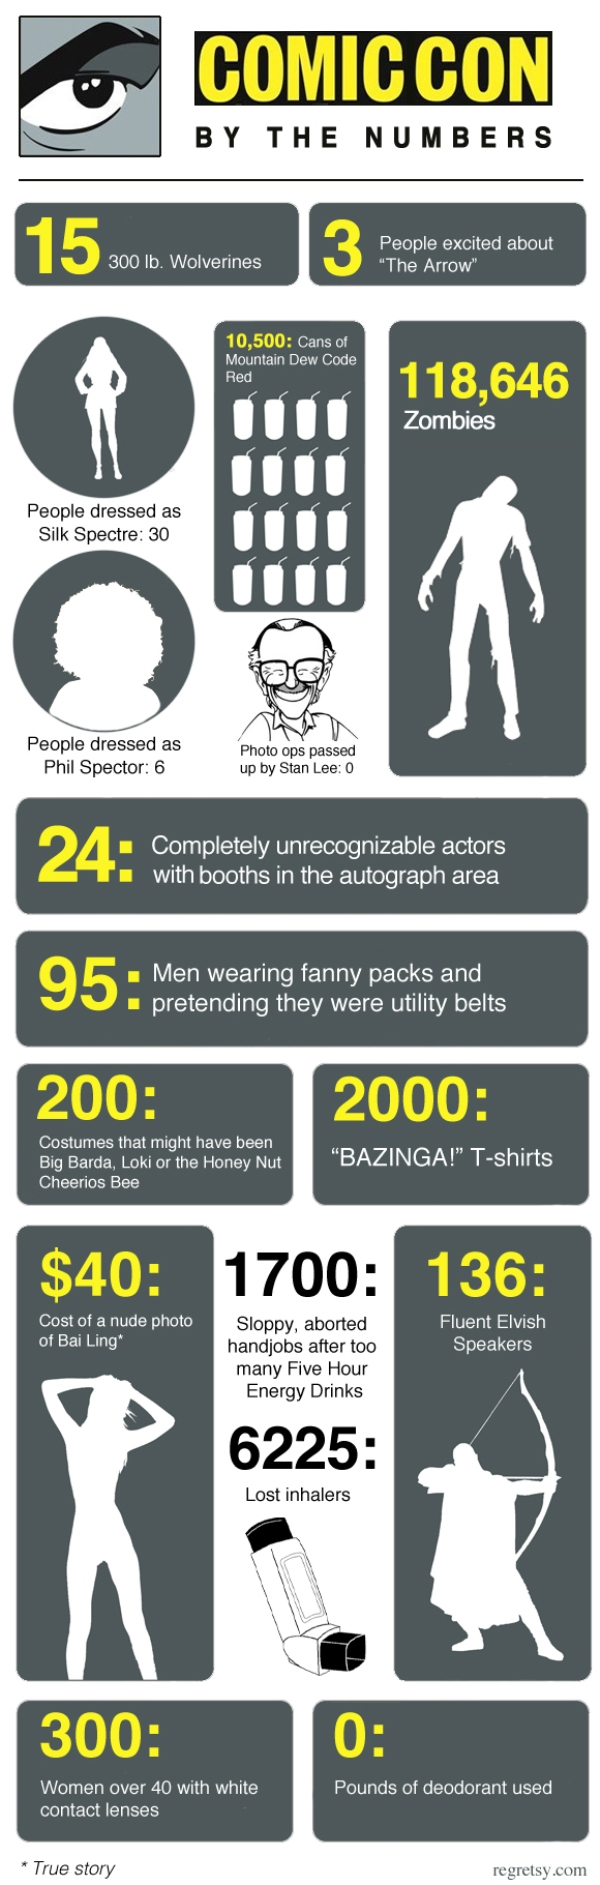 Comic Con 2012 by the Numbers